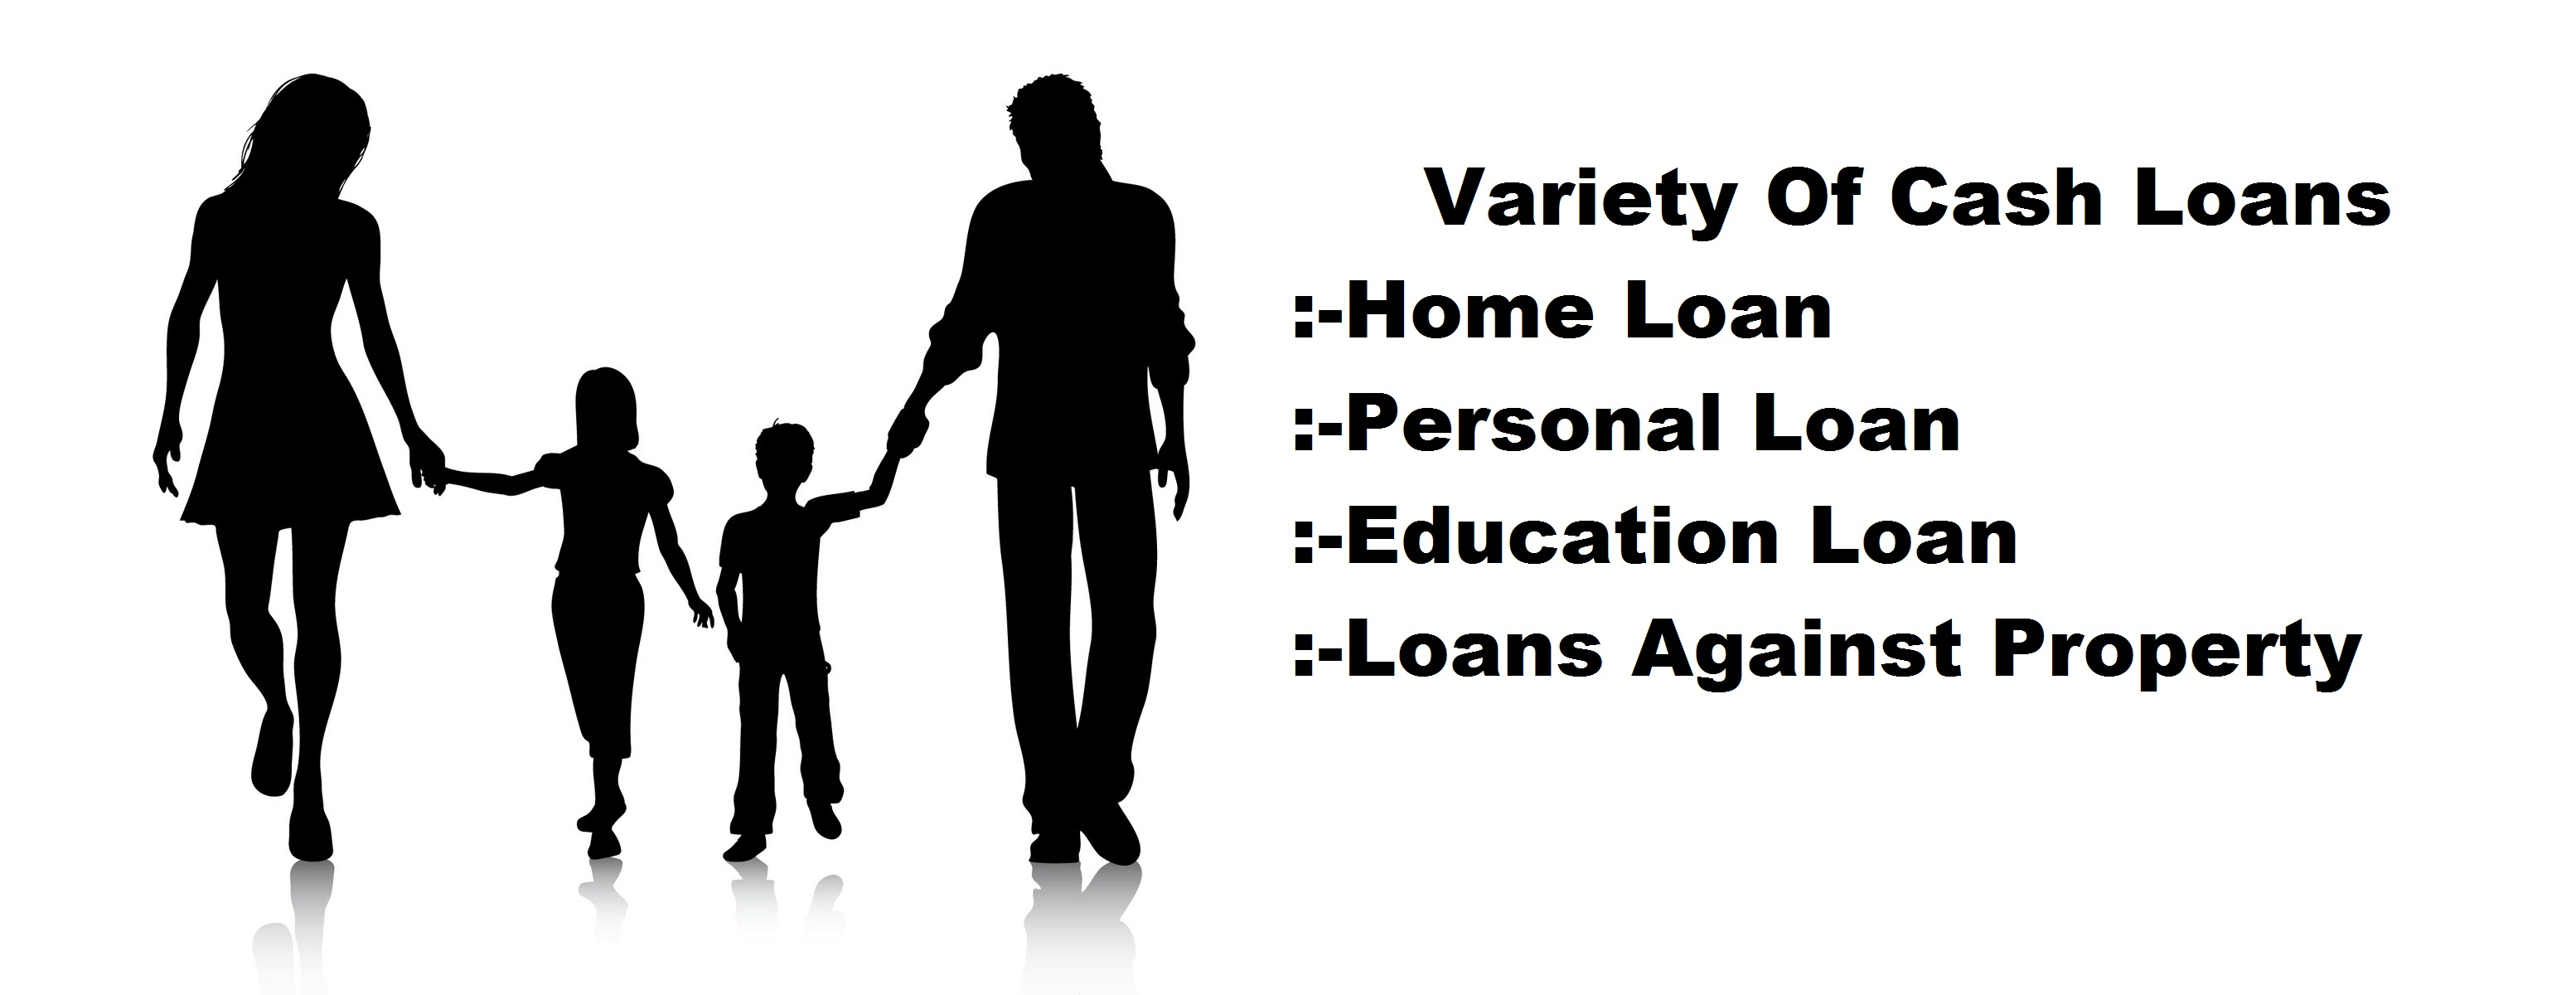 Variety Of Cash Loans